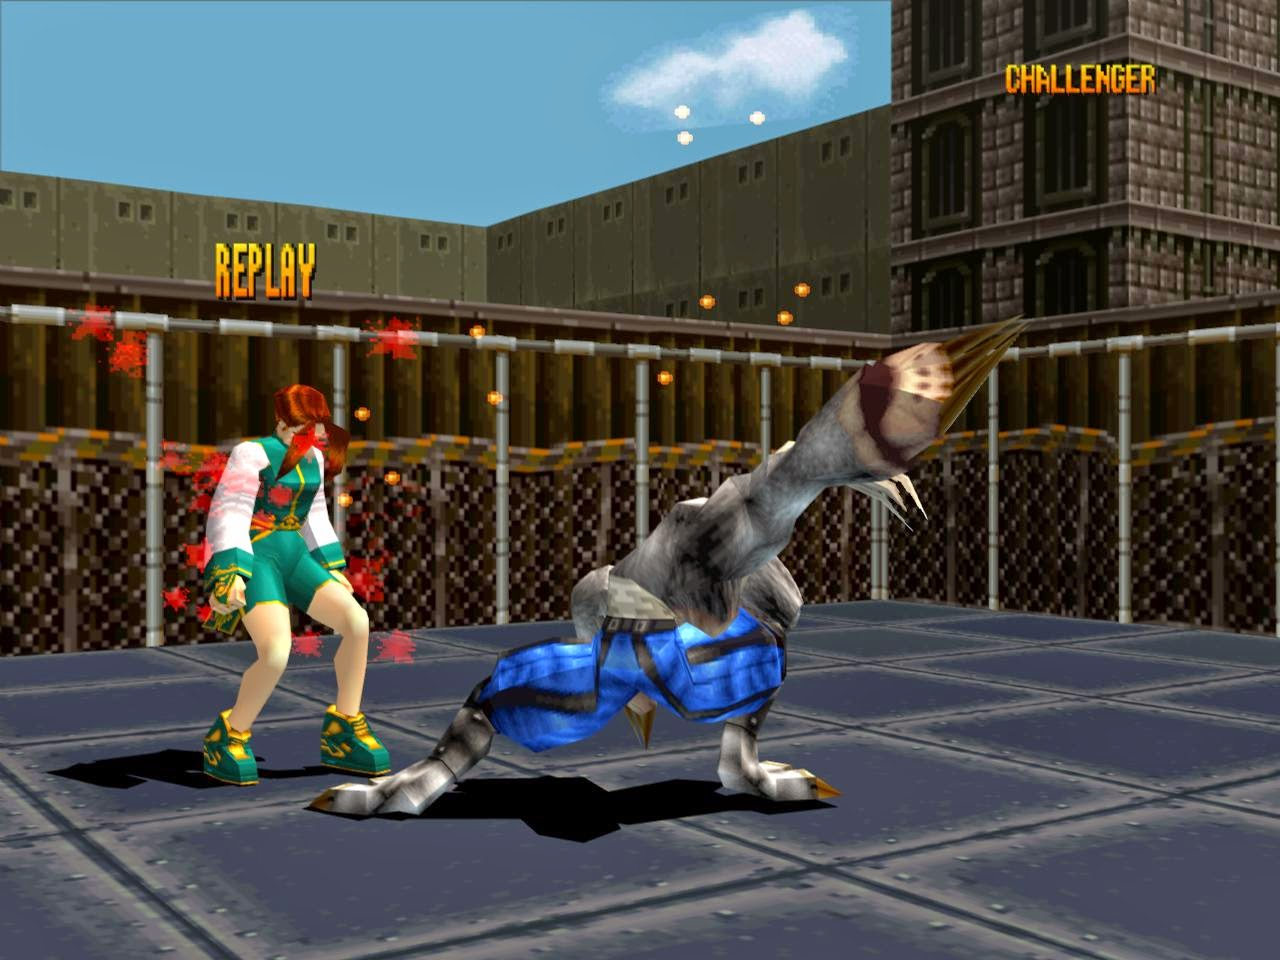 Bloody roar 2 (usa) psx / sony playstation iso download | romulation.